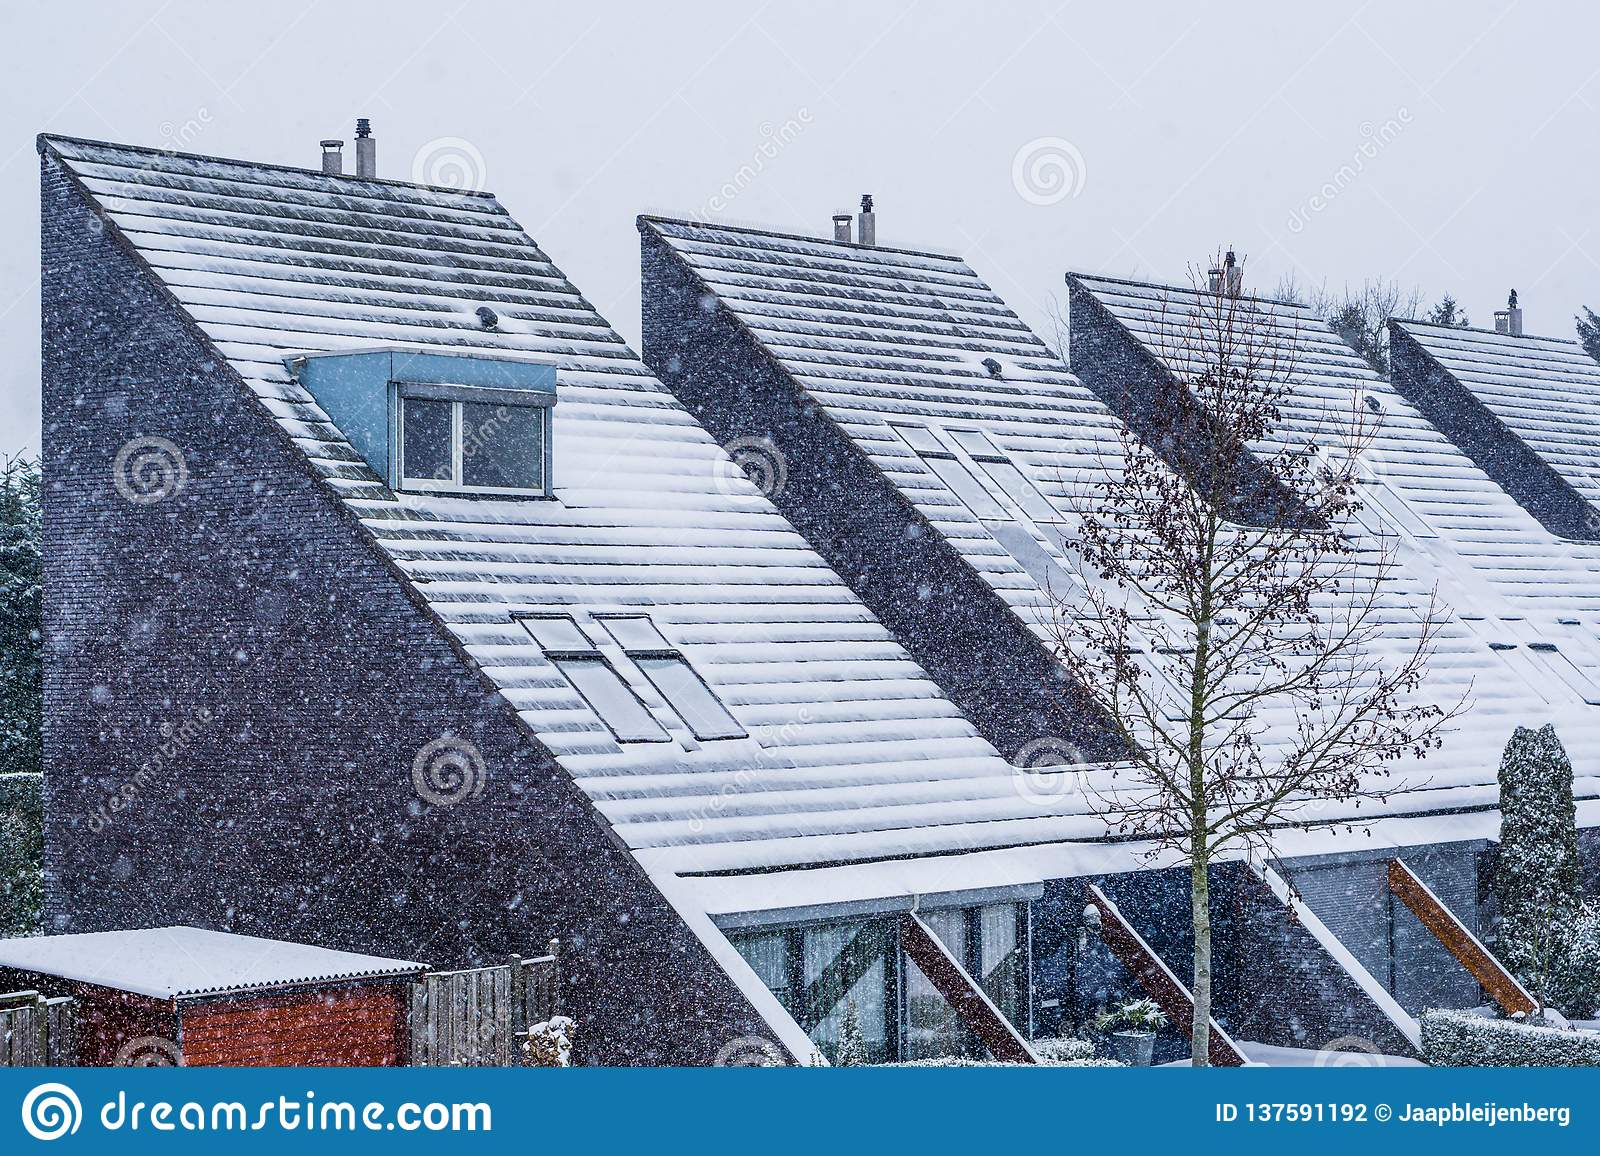 Modern dutch pointy rooftops covered in snow, Modern neighborhood during winter season, snowy cold weather in the Netherlands